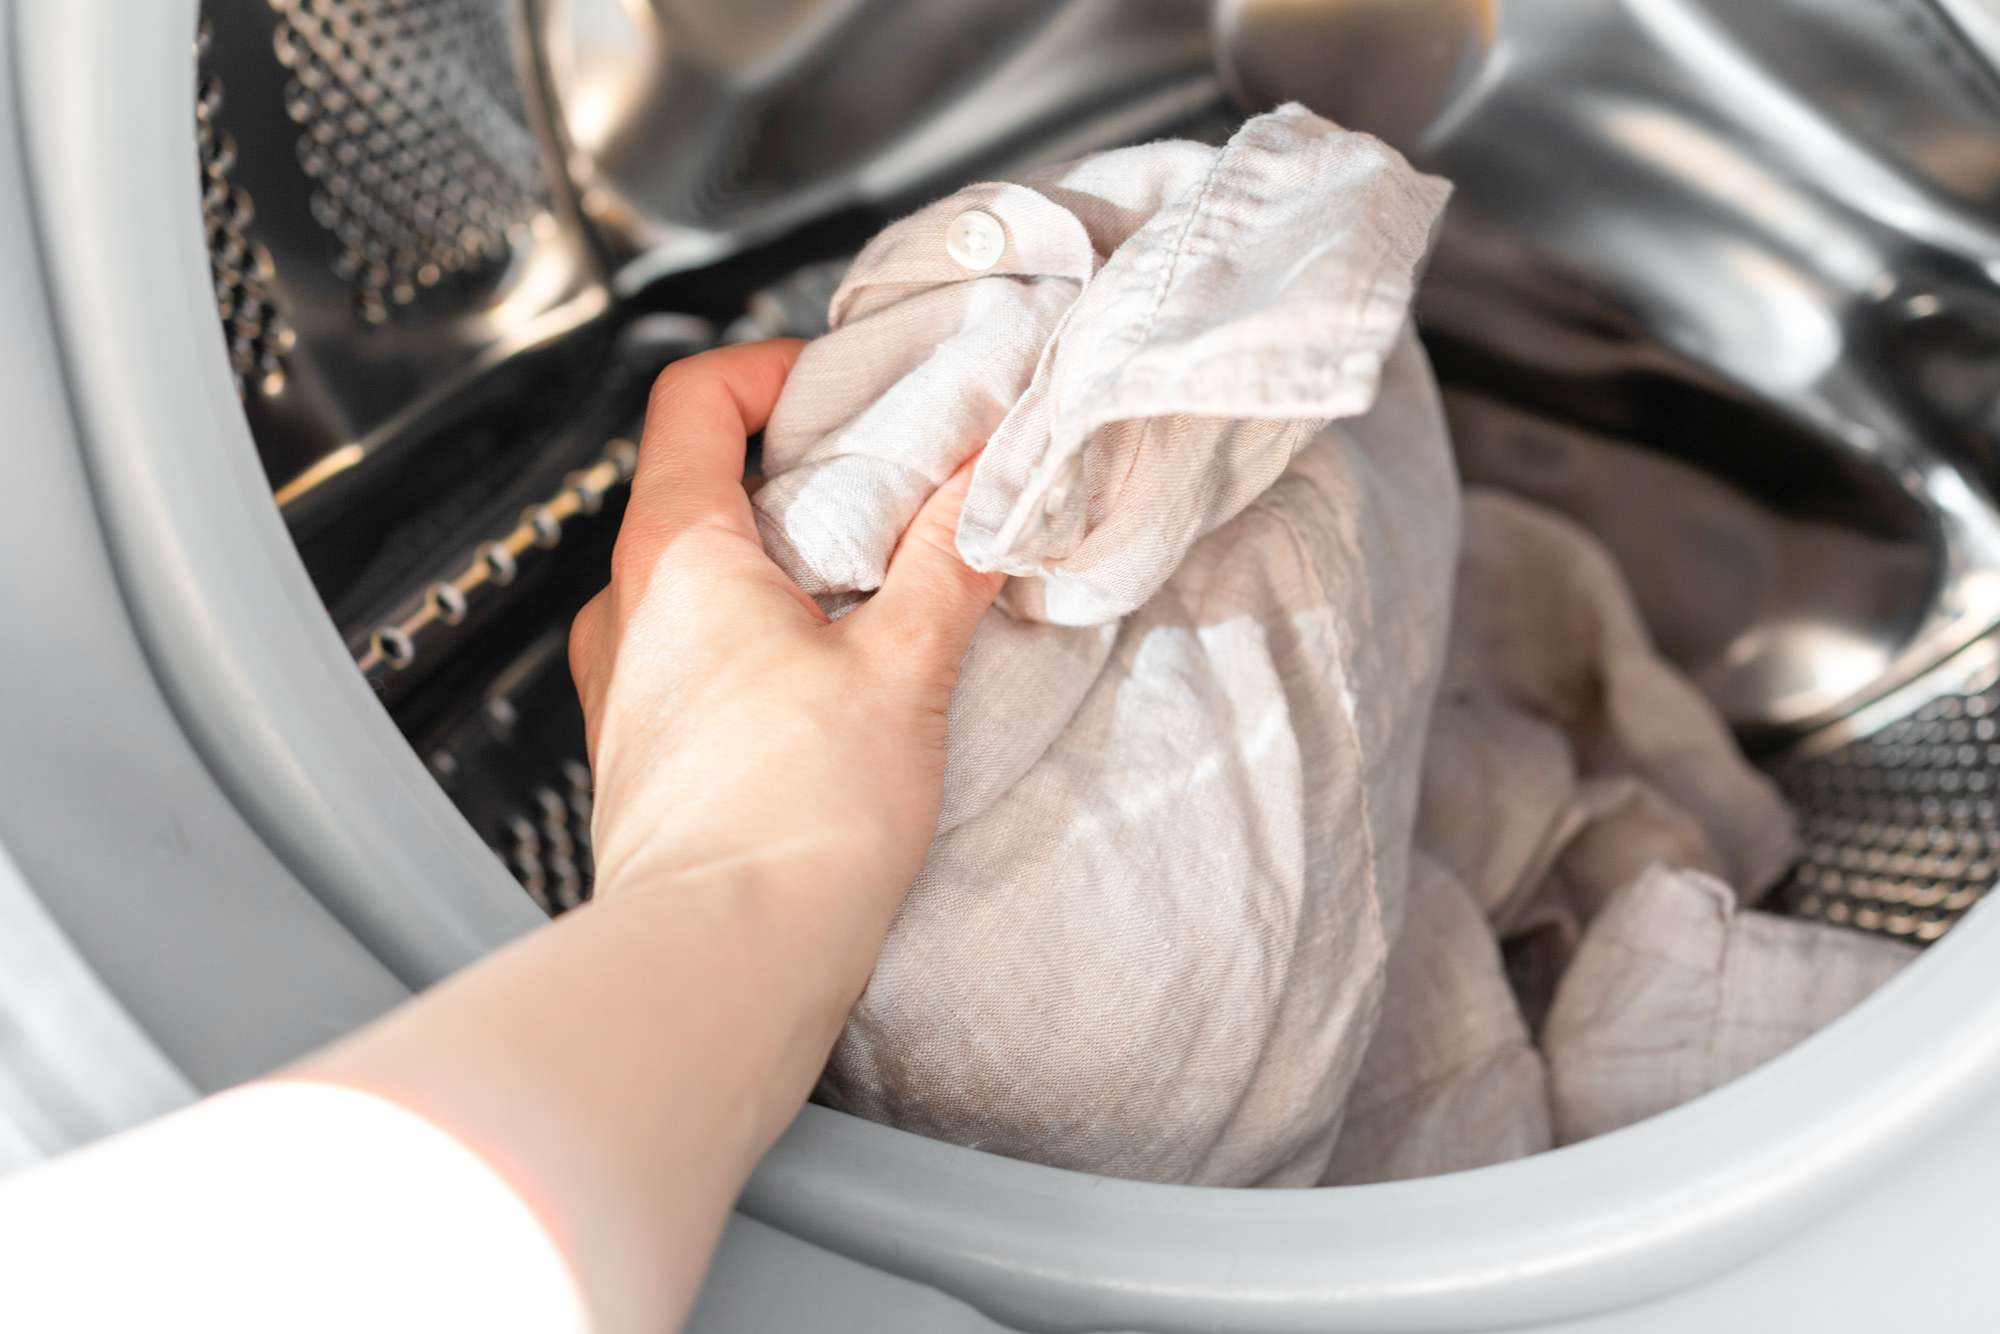 person placing a garment into the washing machine